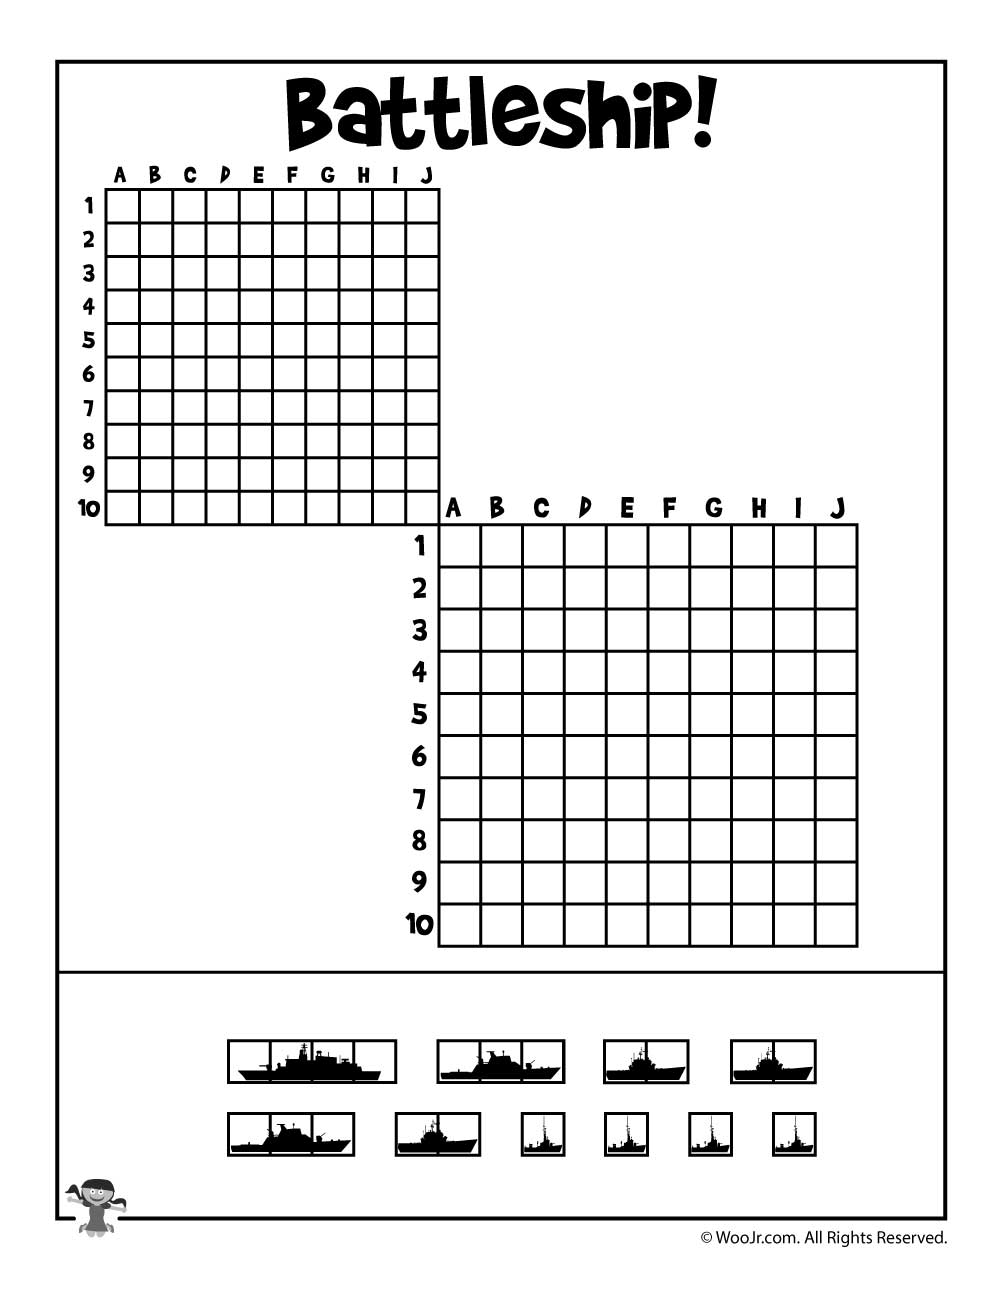 Nifty image for battleship printable